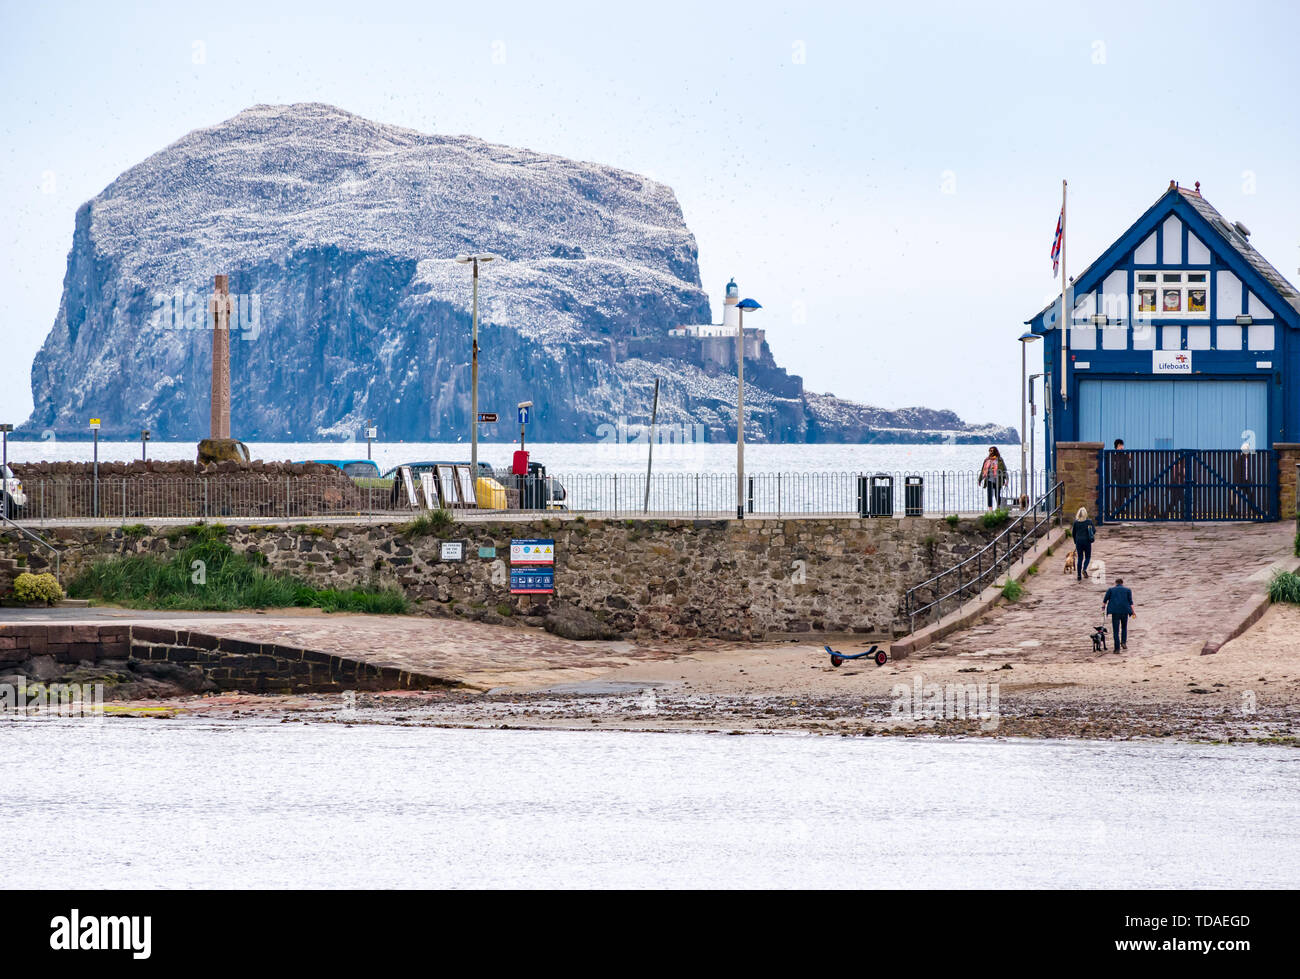 North Berwick, East Lothian, Scotland, United Kingdom, 14th June 2019. UK Weather: After East Lothian suffered heavy rain the last few days, the weather has brightened, A view of the largest gannet colony on Bass Rock from West Bay. Credit: Sally Anderson Credit: Sally Anderson/Alamy Live News - Stock Image